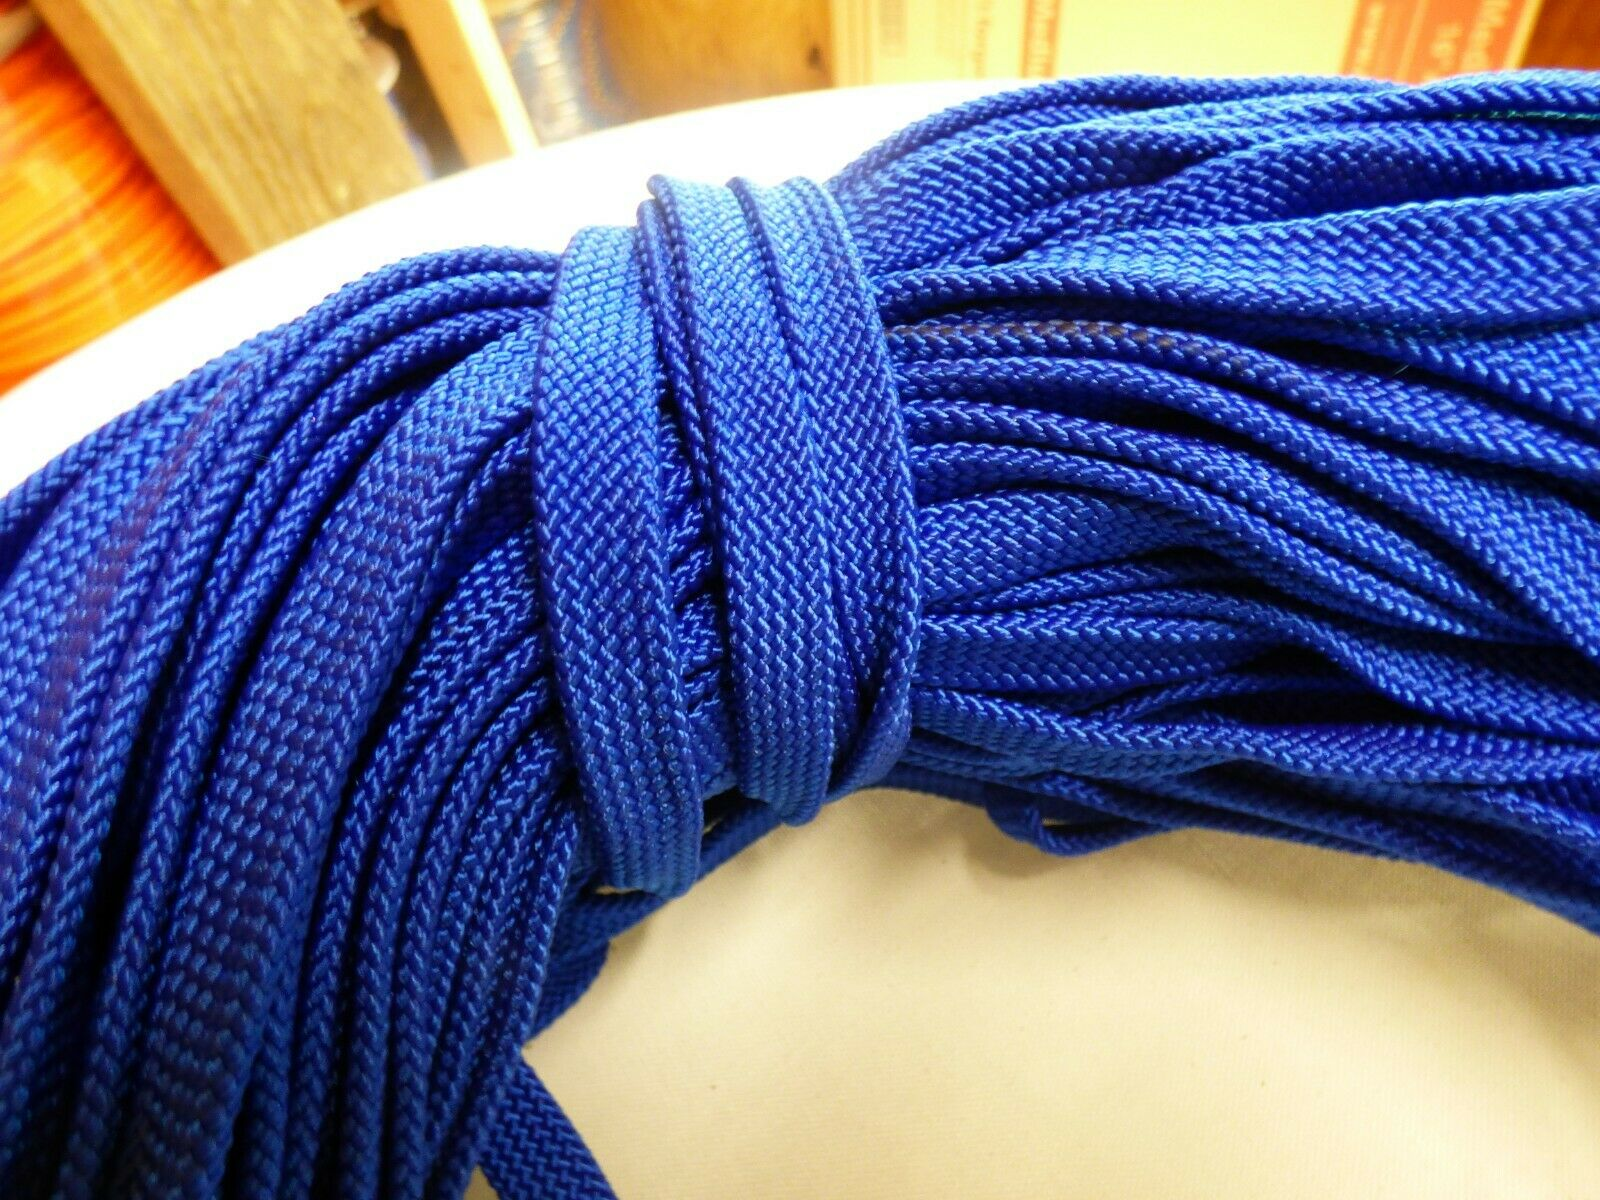 7 16 x 146 ft.  Hollow  Flat Braid Nylon Rope Hank.Discounted. Made in USA  buy 100% authentic quality